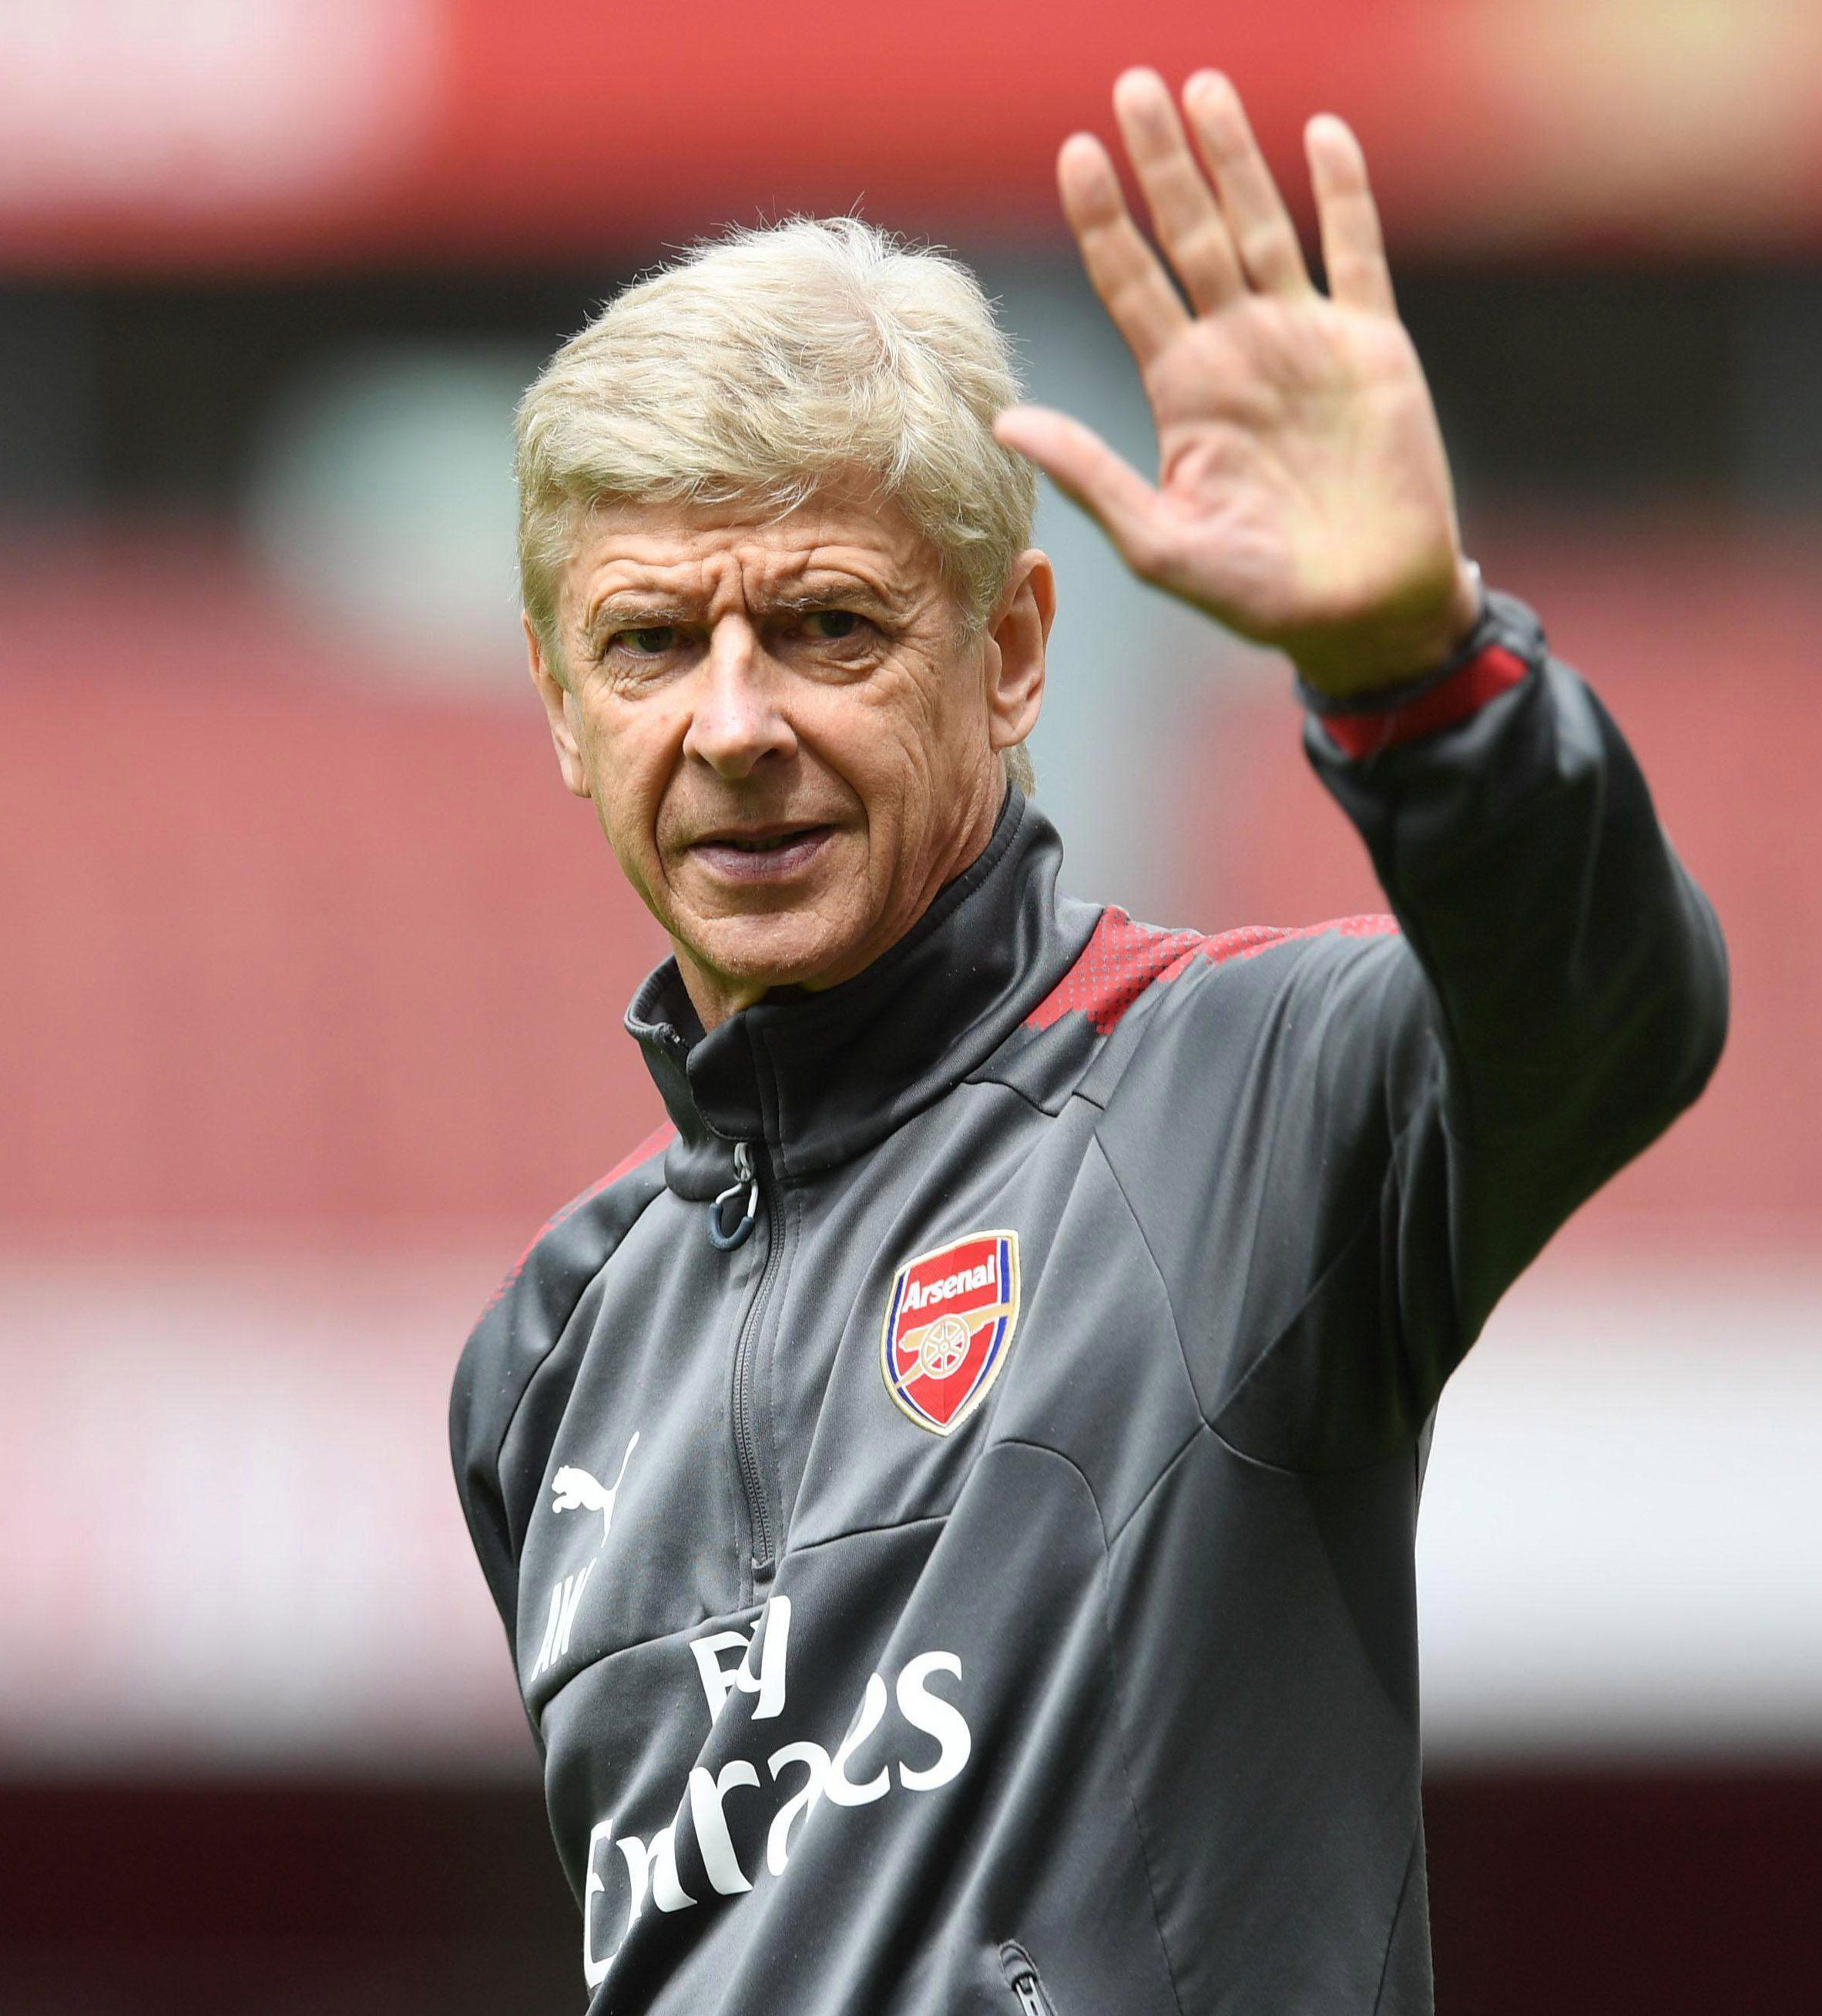 Arsene Wenger signed Perez as a potential replacement for injury-prone Danny Welbeck